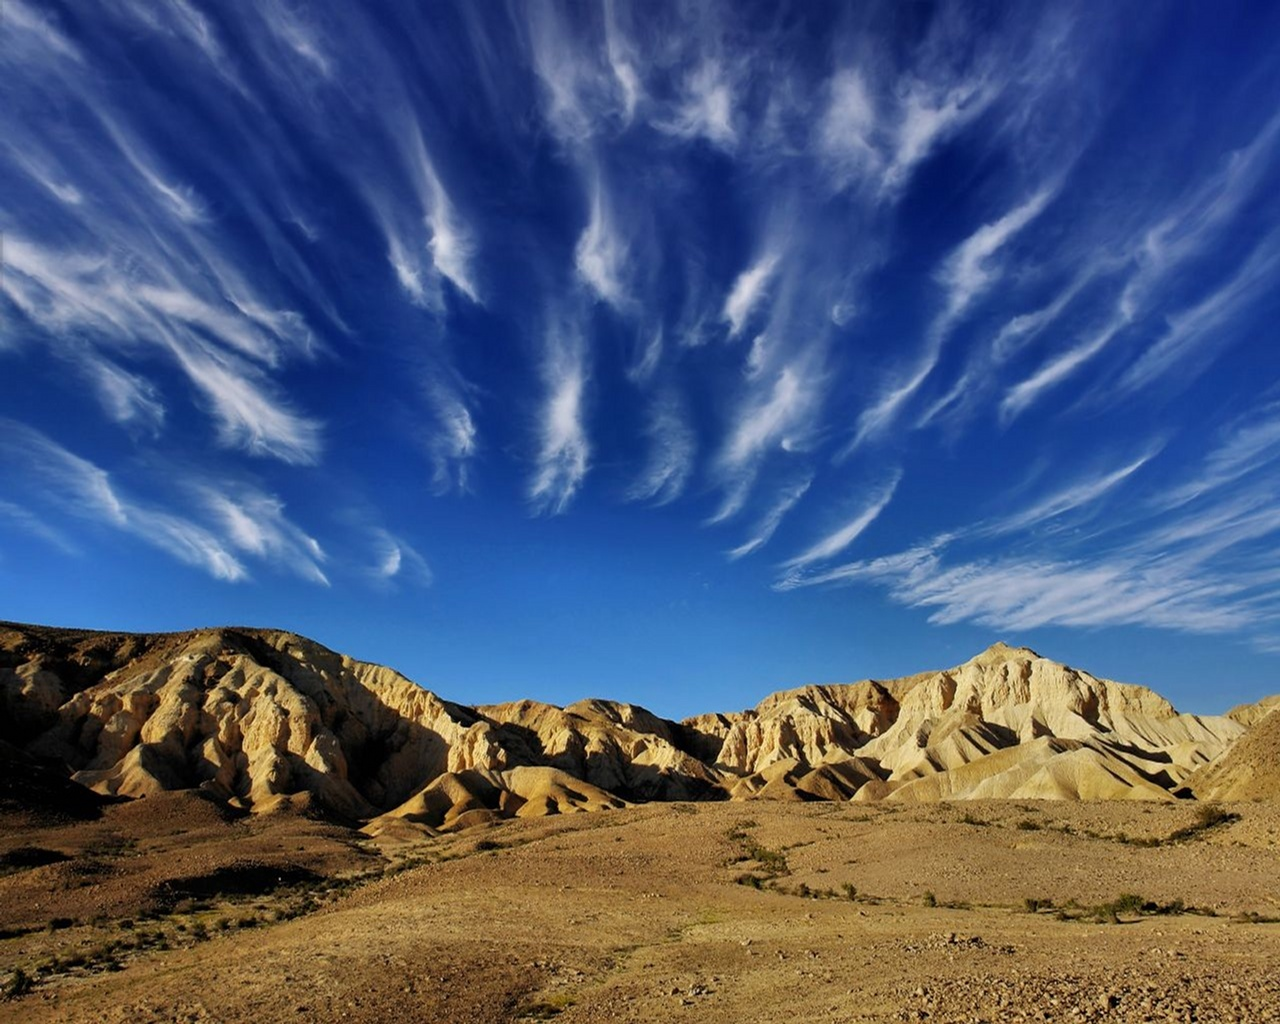 9901 download wallpaper Landscape, Cities, Sky, Desert screensavers and pictures for free